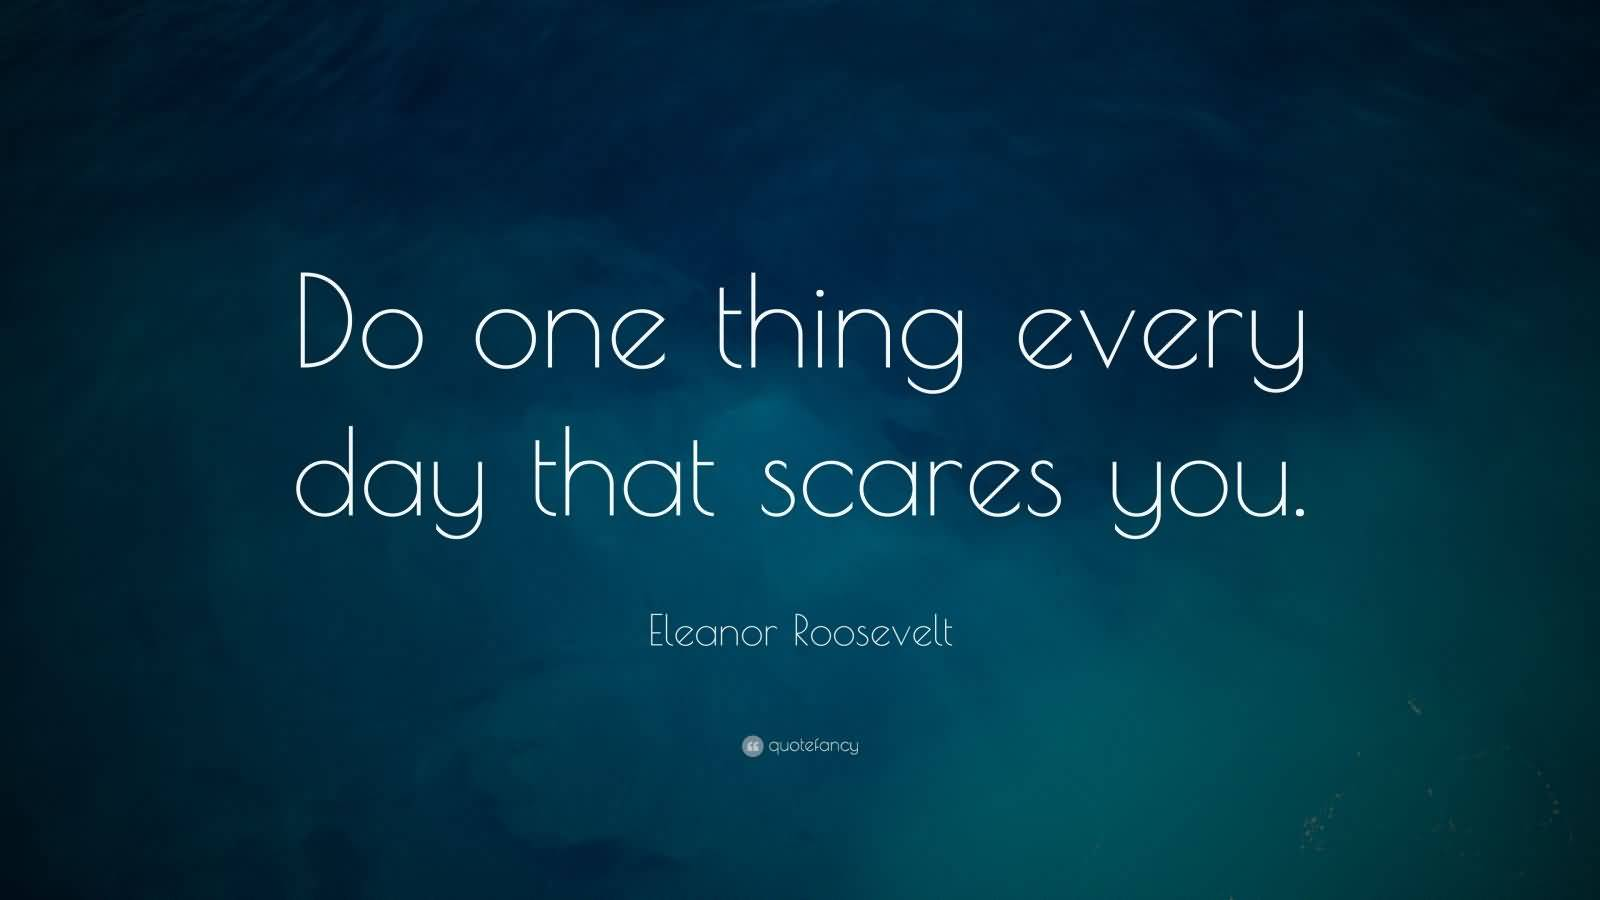 Eleanor Roosevelt Quote Meme Image 12